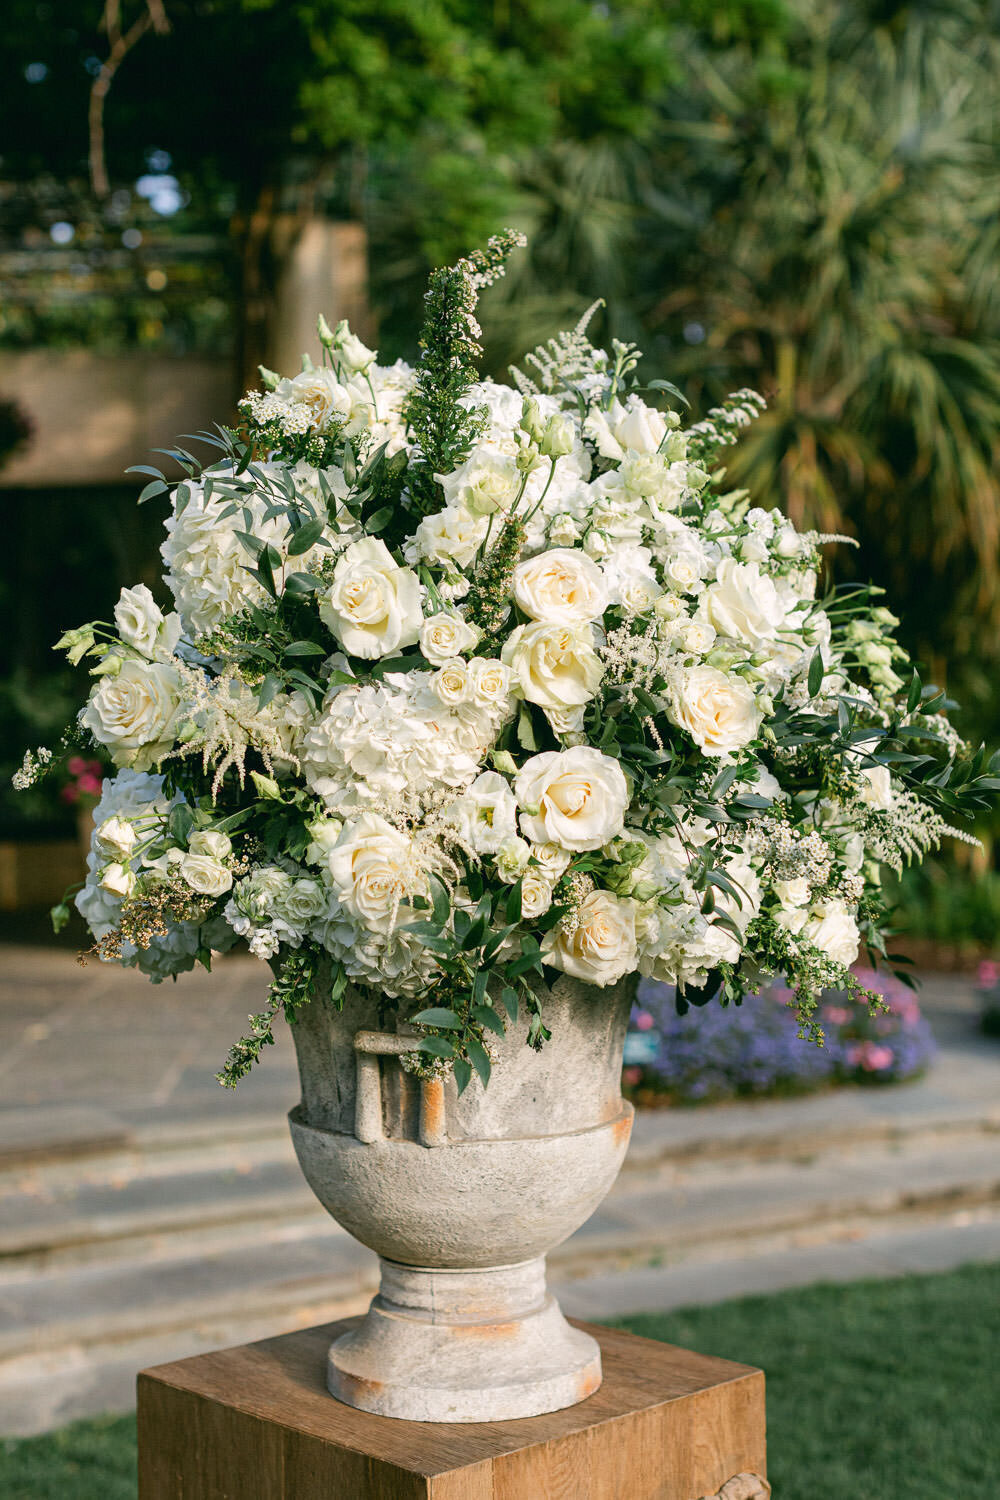 White flowers in large vase sitting outside at wedding ceremony garden